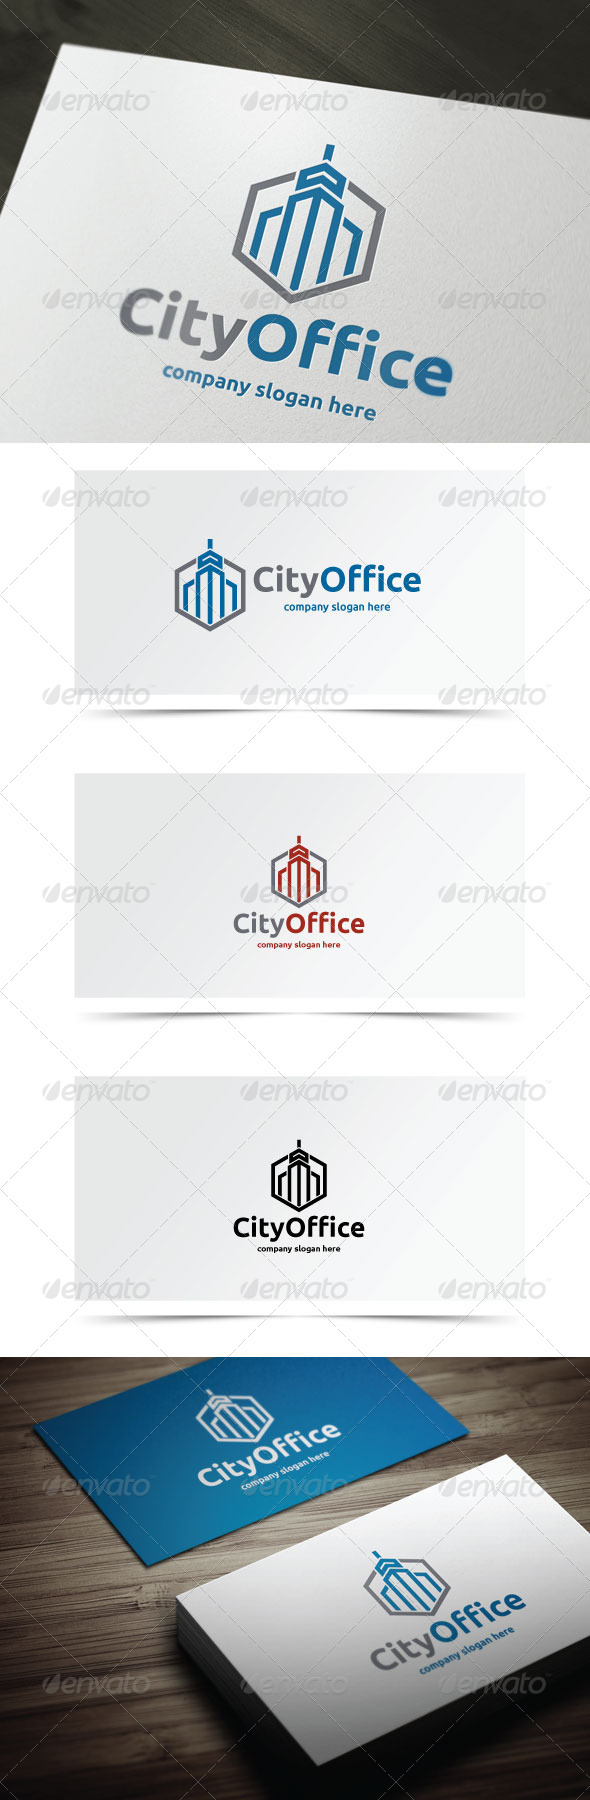 GraphicRiver City Office 7035535